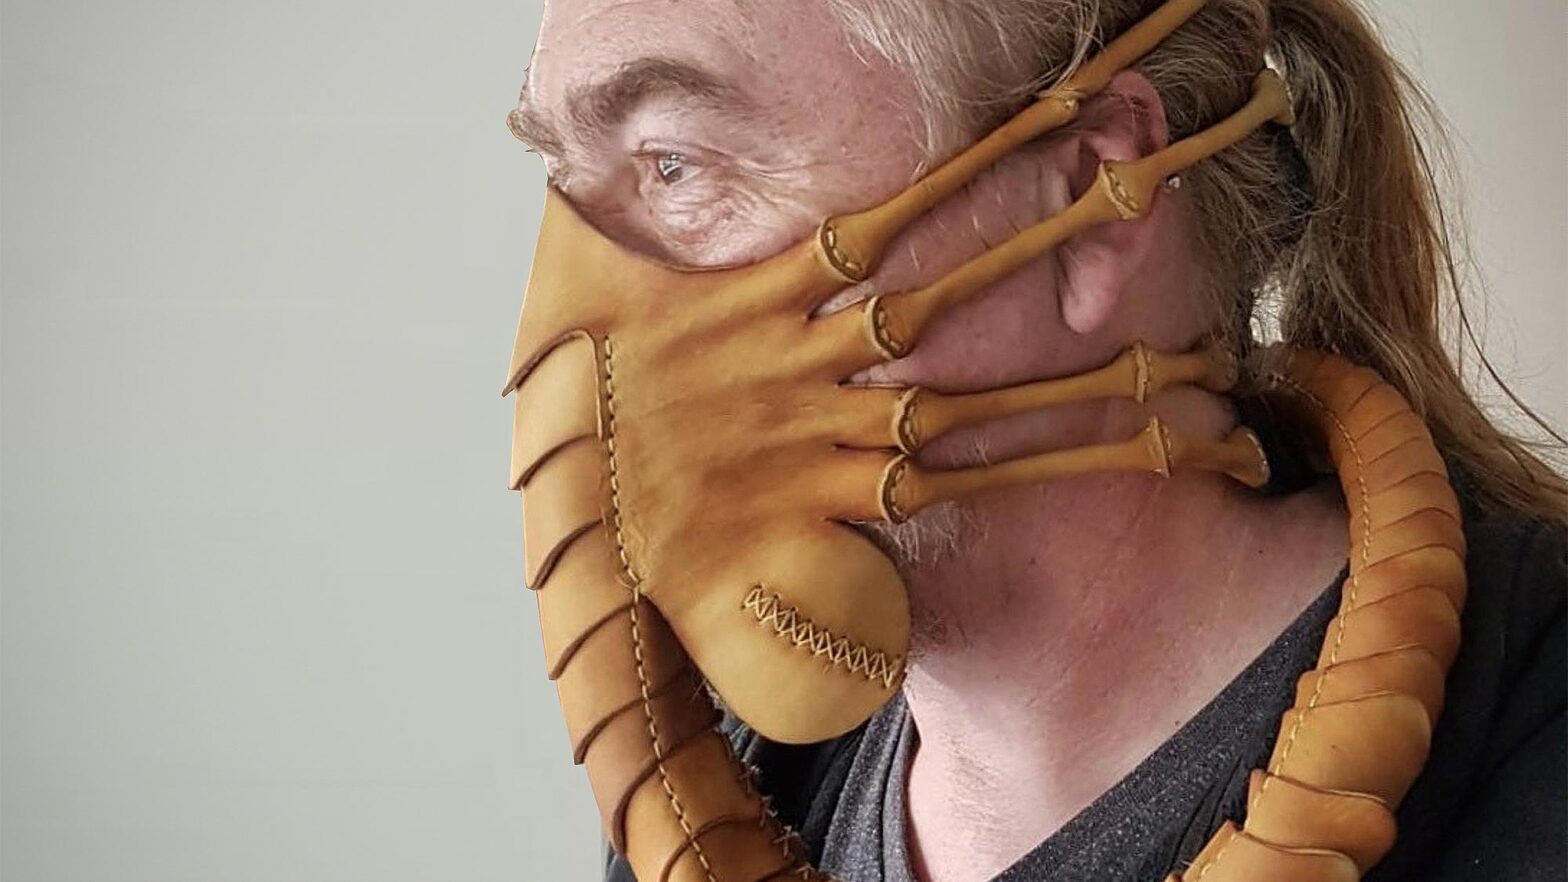 Leather Face Hugger Mask by Pirate's Leatherworks